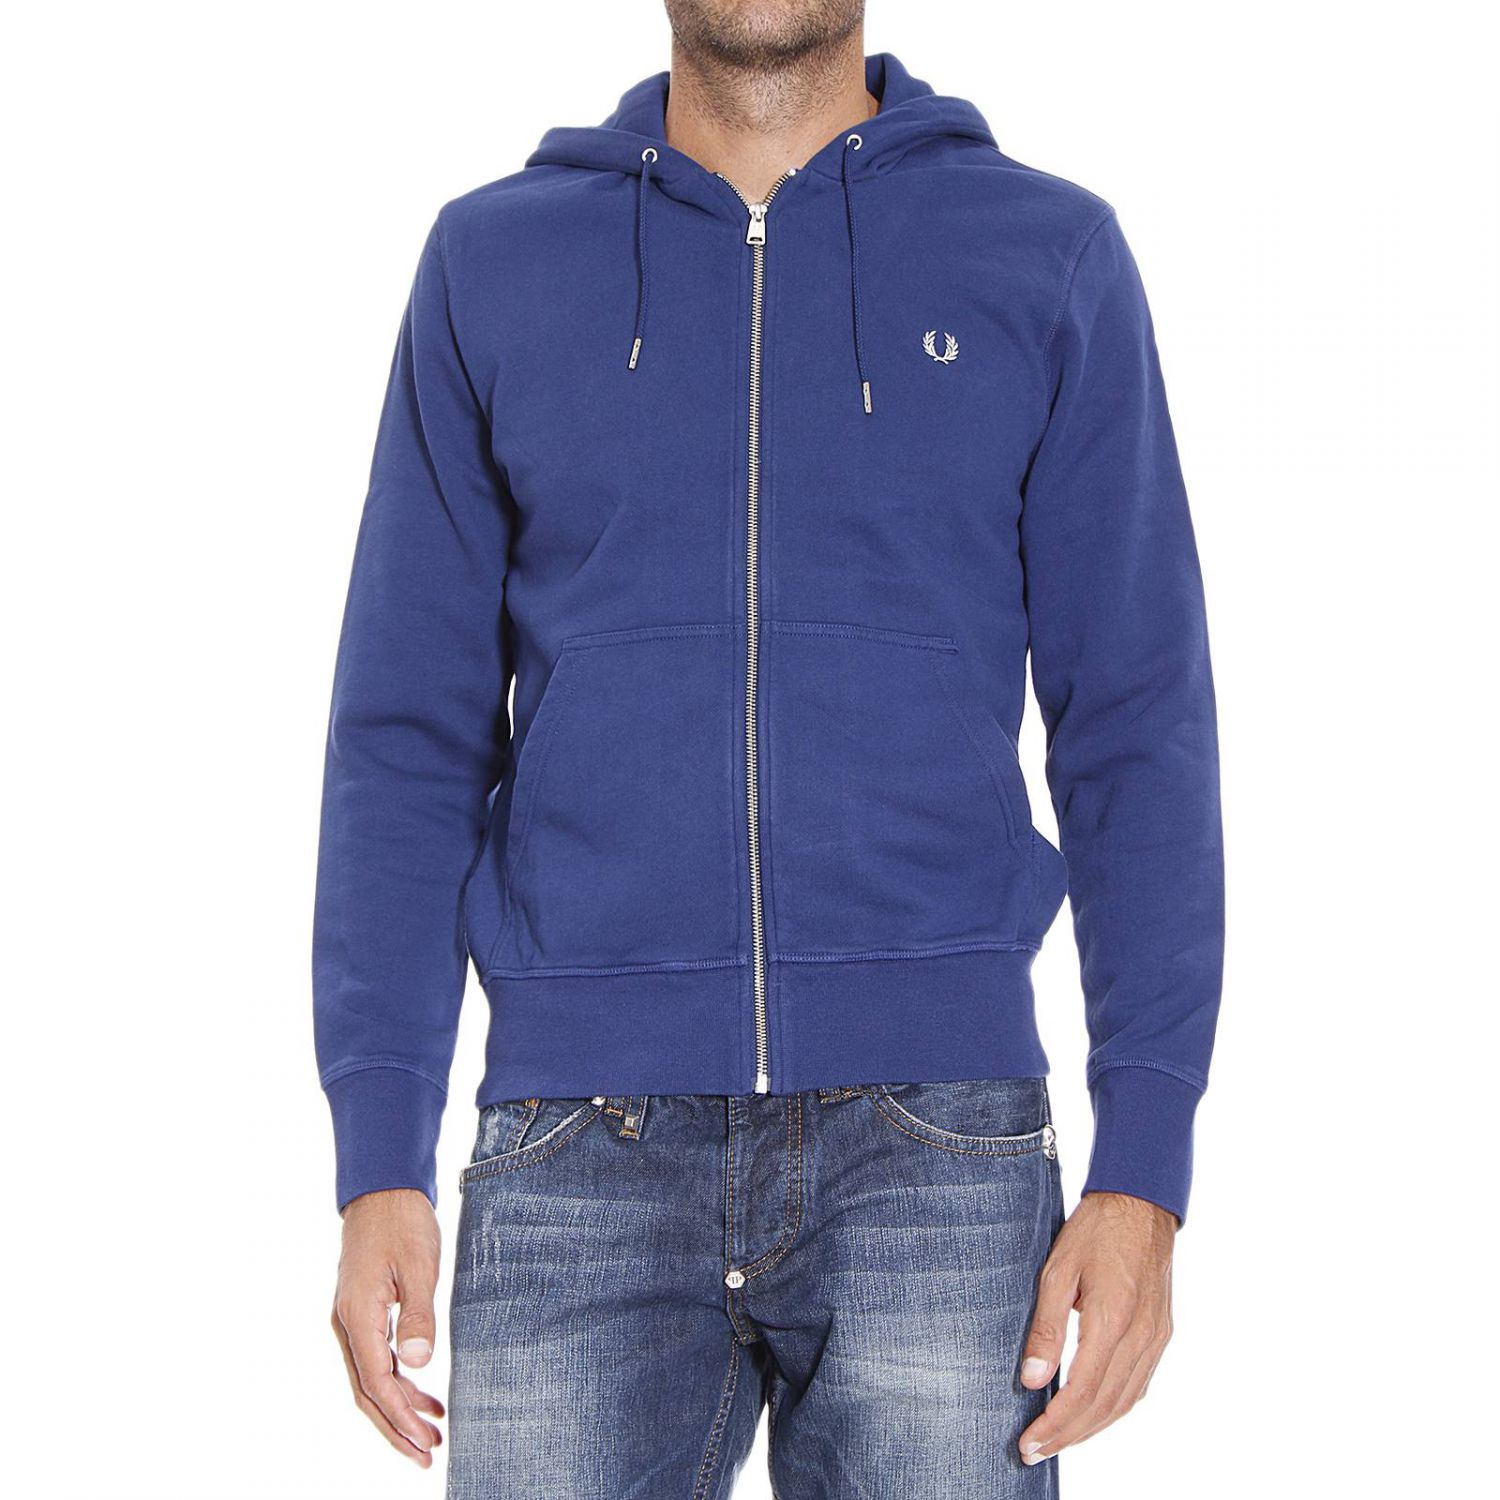 fred perry sweater sweetshirt zip with hoodie in blue for. Black Bedroom Furniture Sets. Home Design Ideas